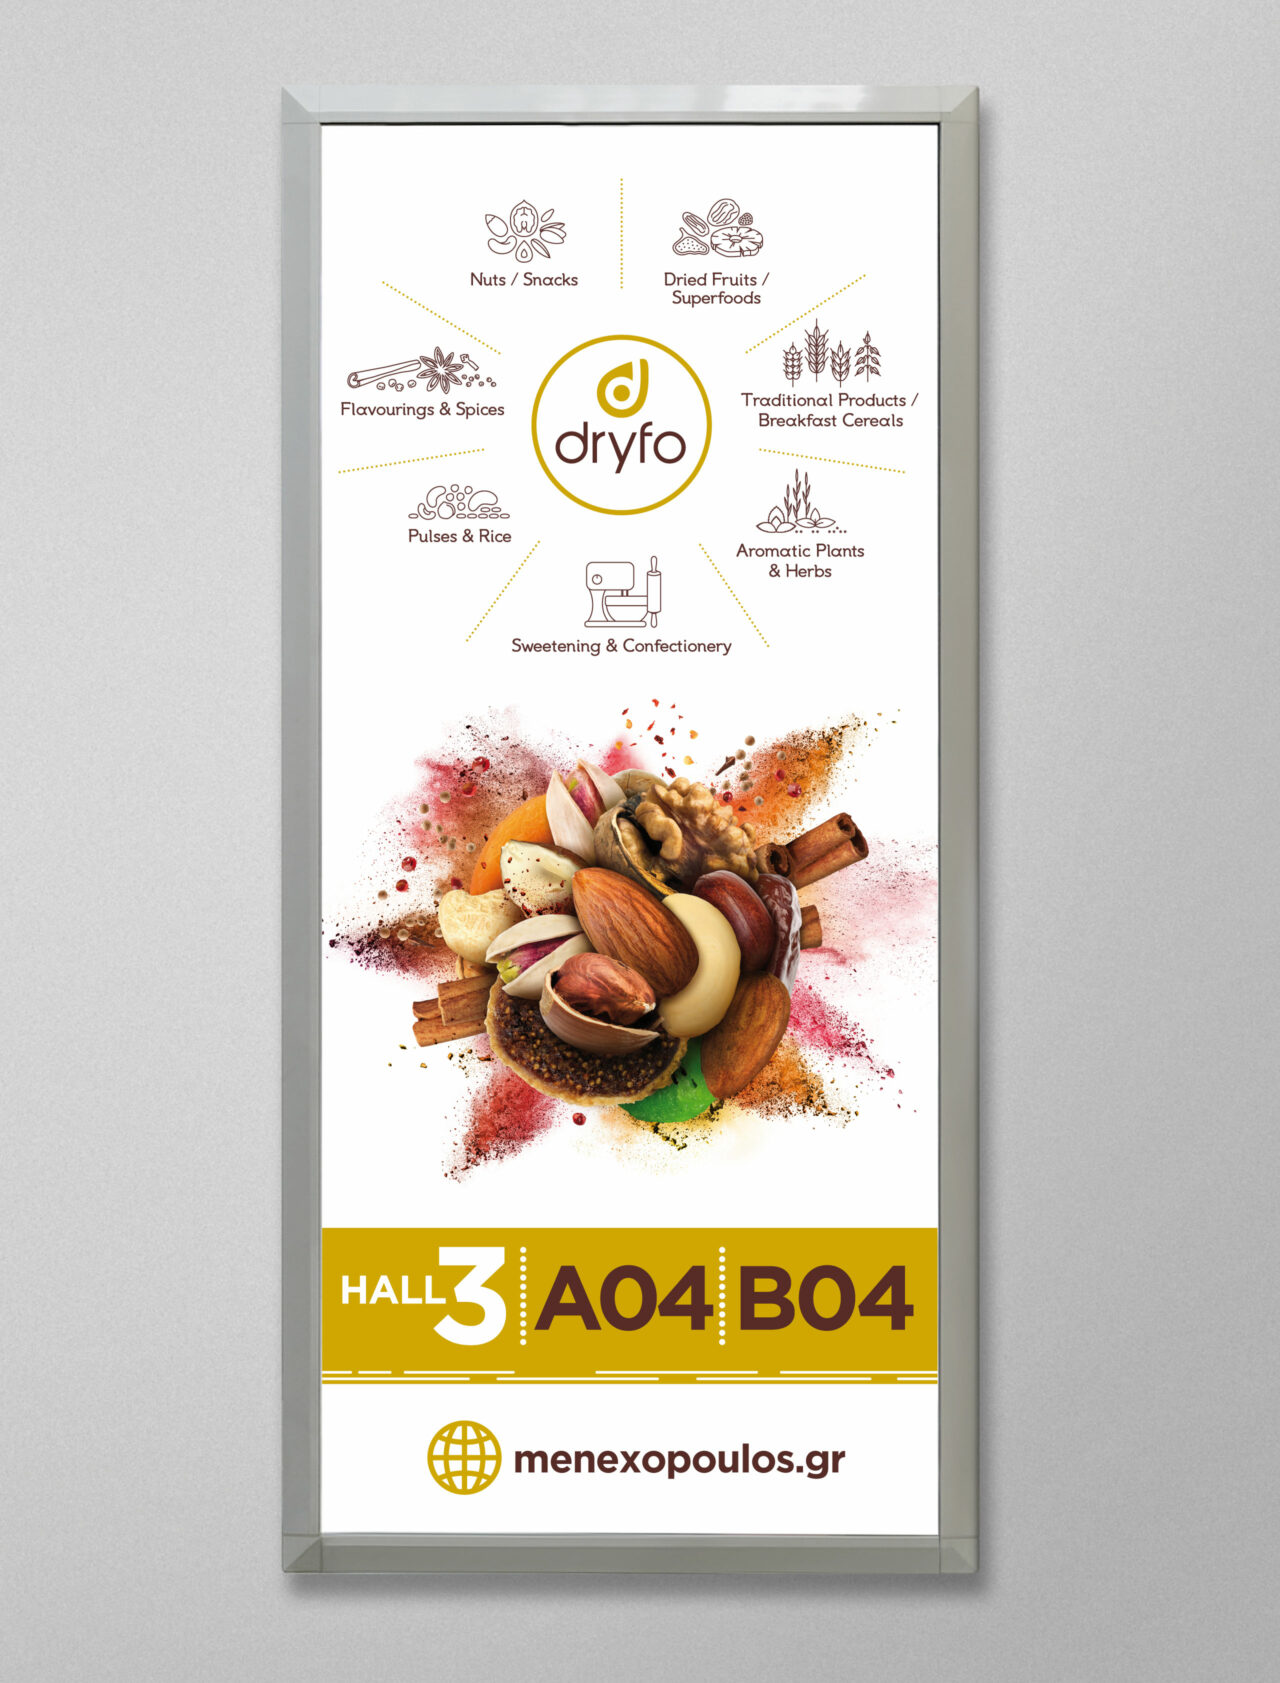 Trade booth backlit panel design for Dryfo Menexopoulos Bros SA Food Expo 2020